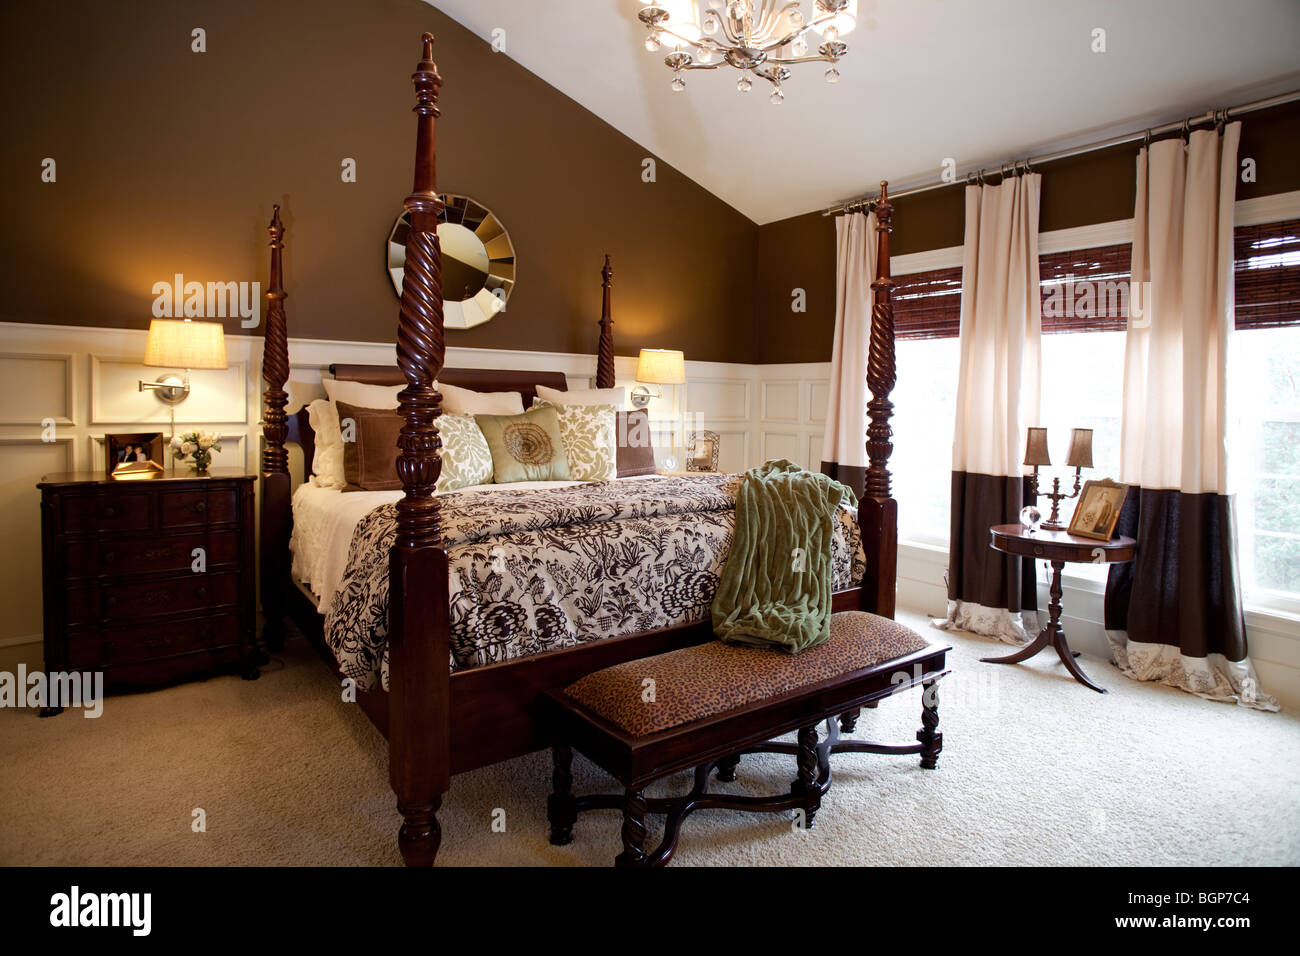 Master Bedroom With King Size Four Poster Bed Covered With Matching Fabric  Duvet And Stack Of Pillows. Cabinets On The Side